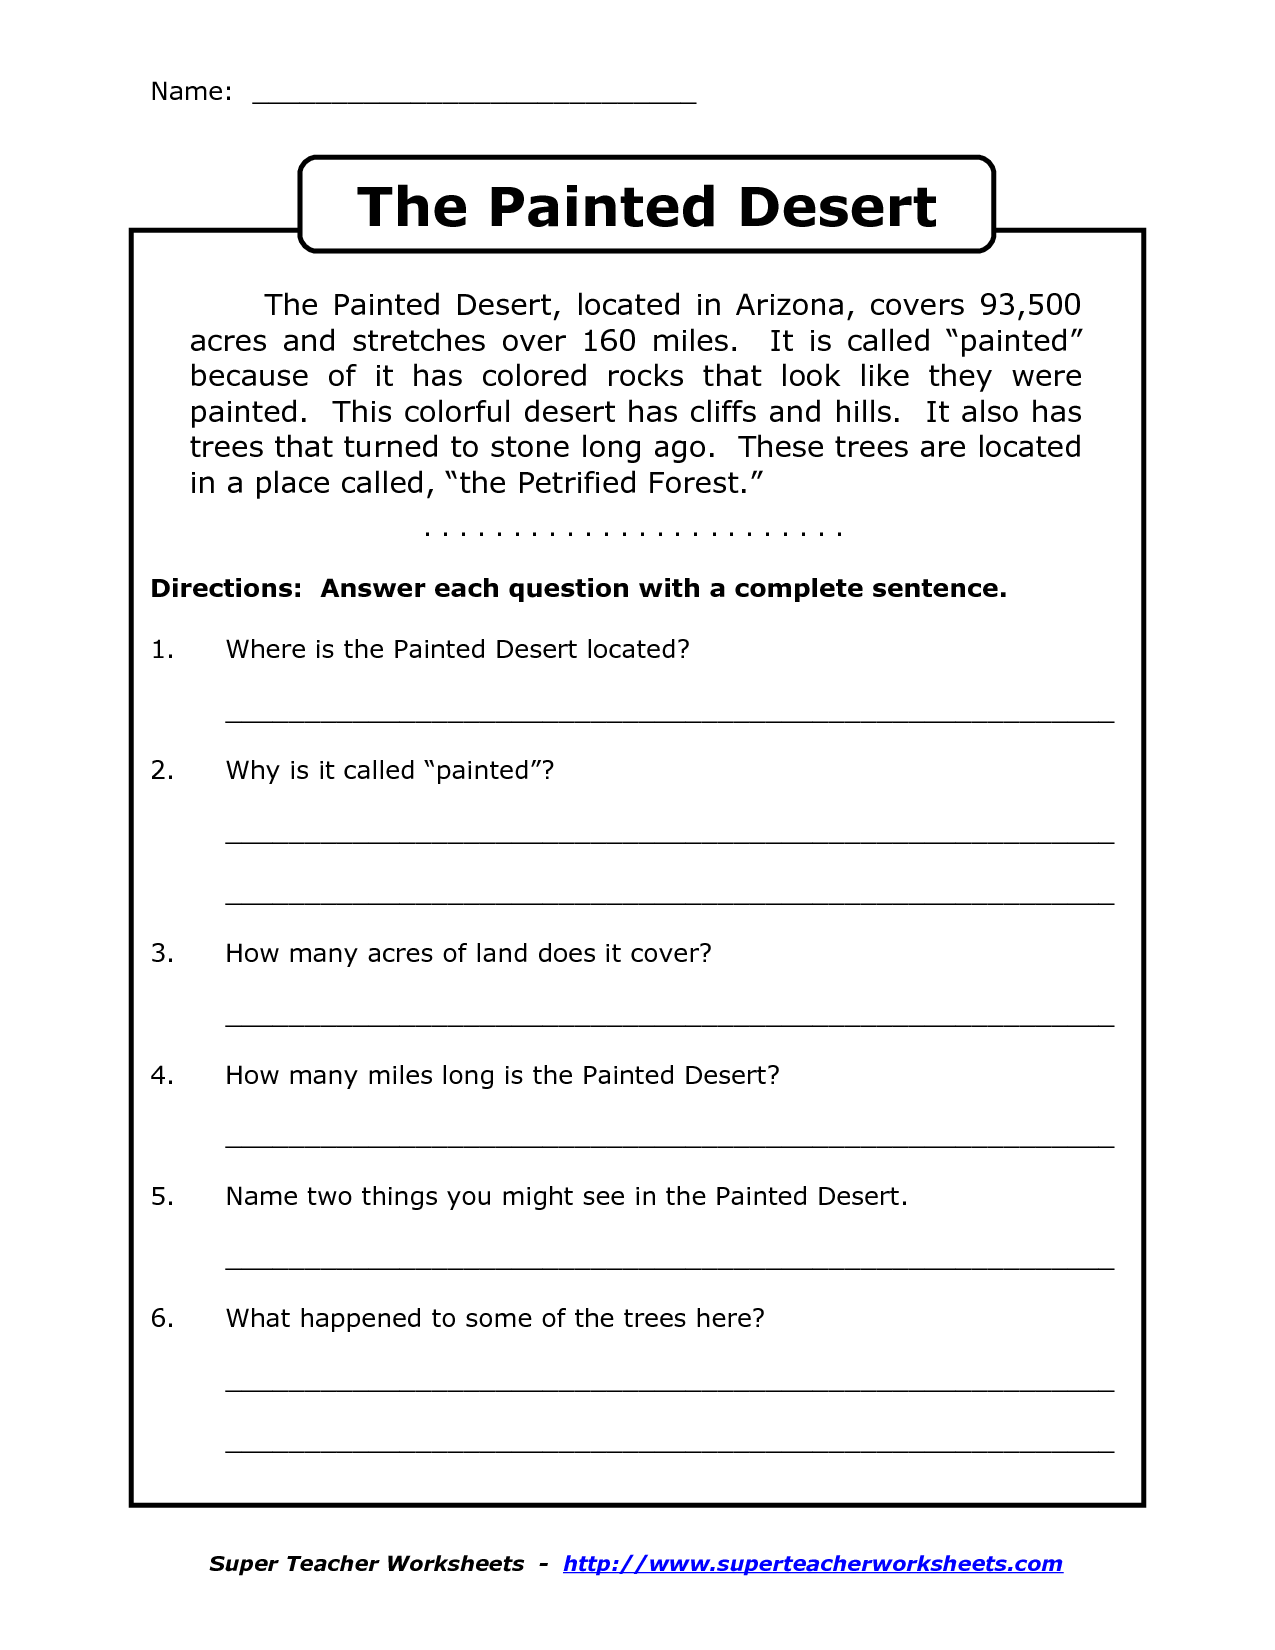 Worksheets Third Grade Reading Printable Worksheets reading worksheets for 4th grade comprehension 3 name the painted desert